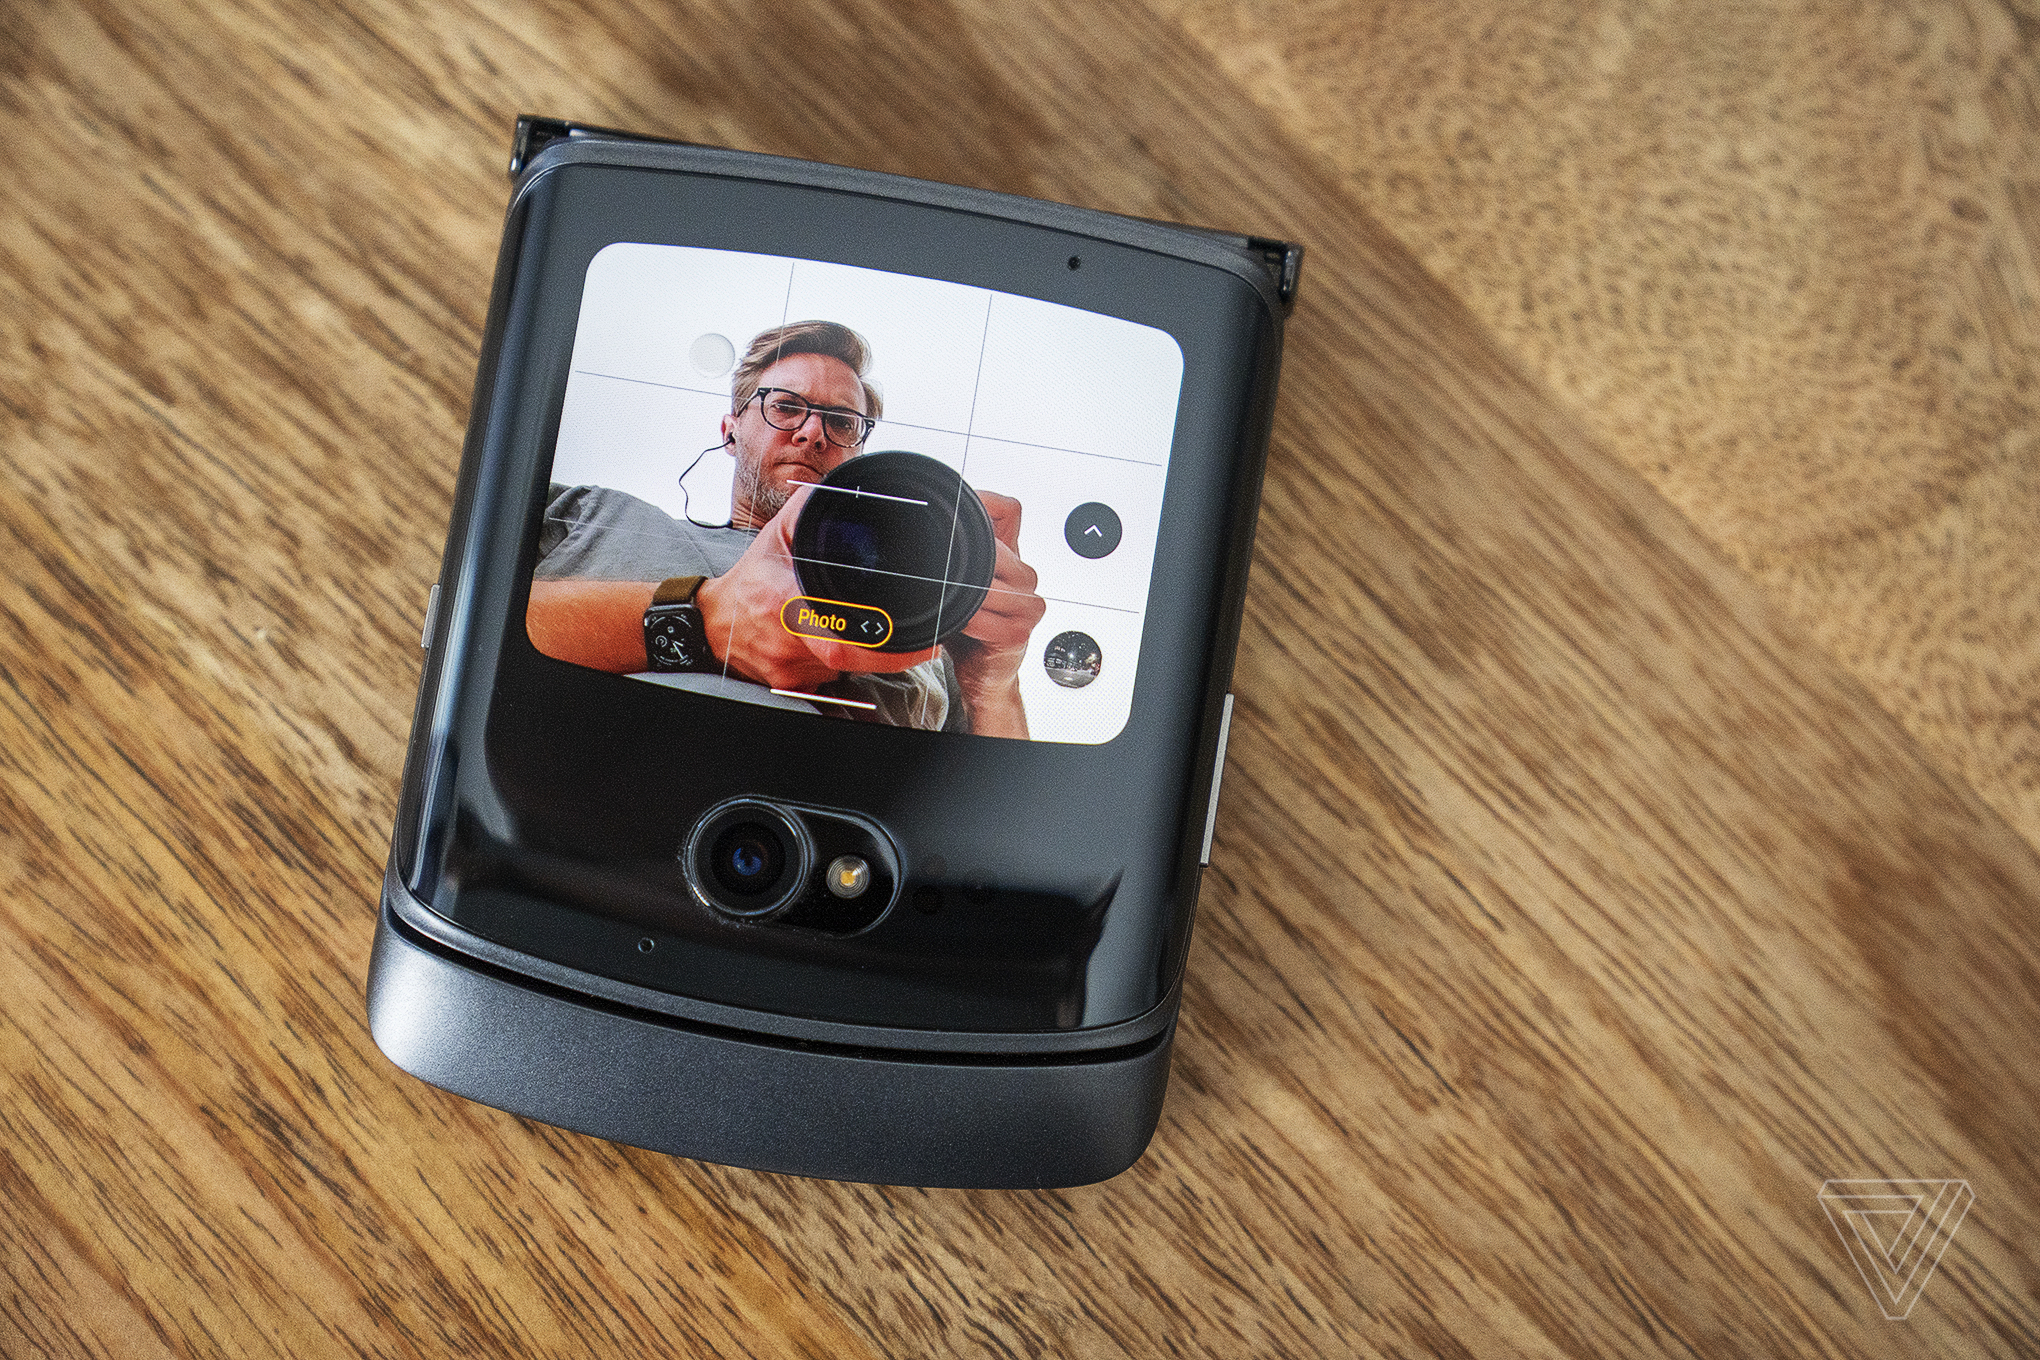 You can use the better outer camera for selfies